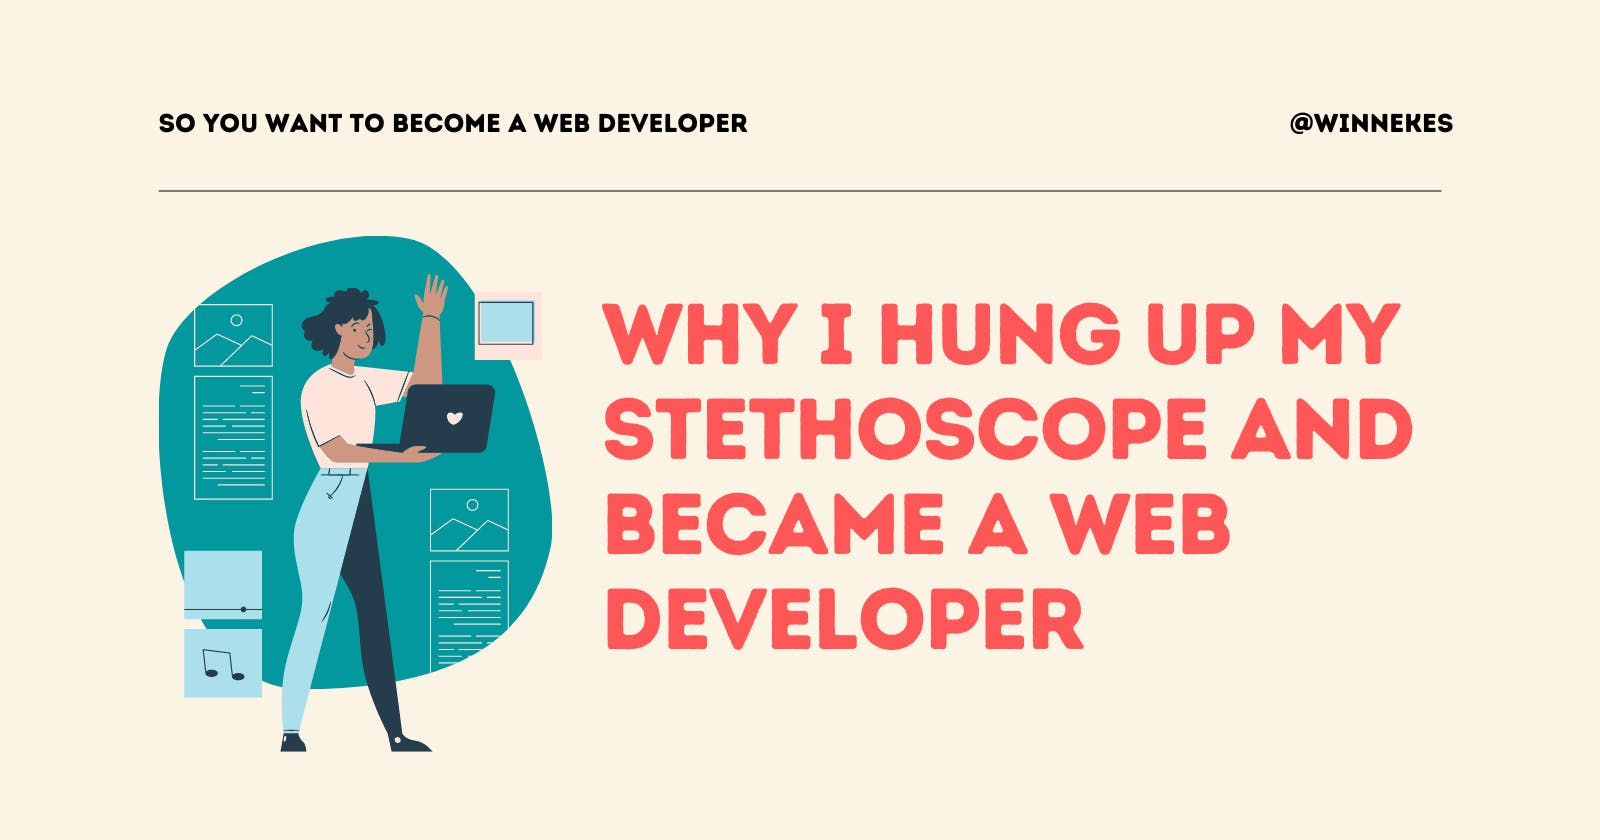 Why I hung up my Stethoscope and became a Web Developer